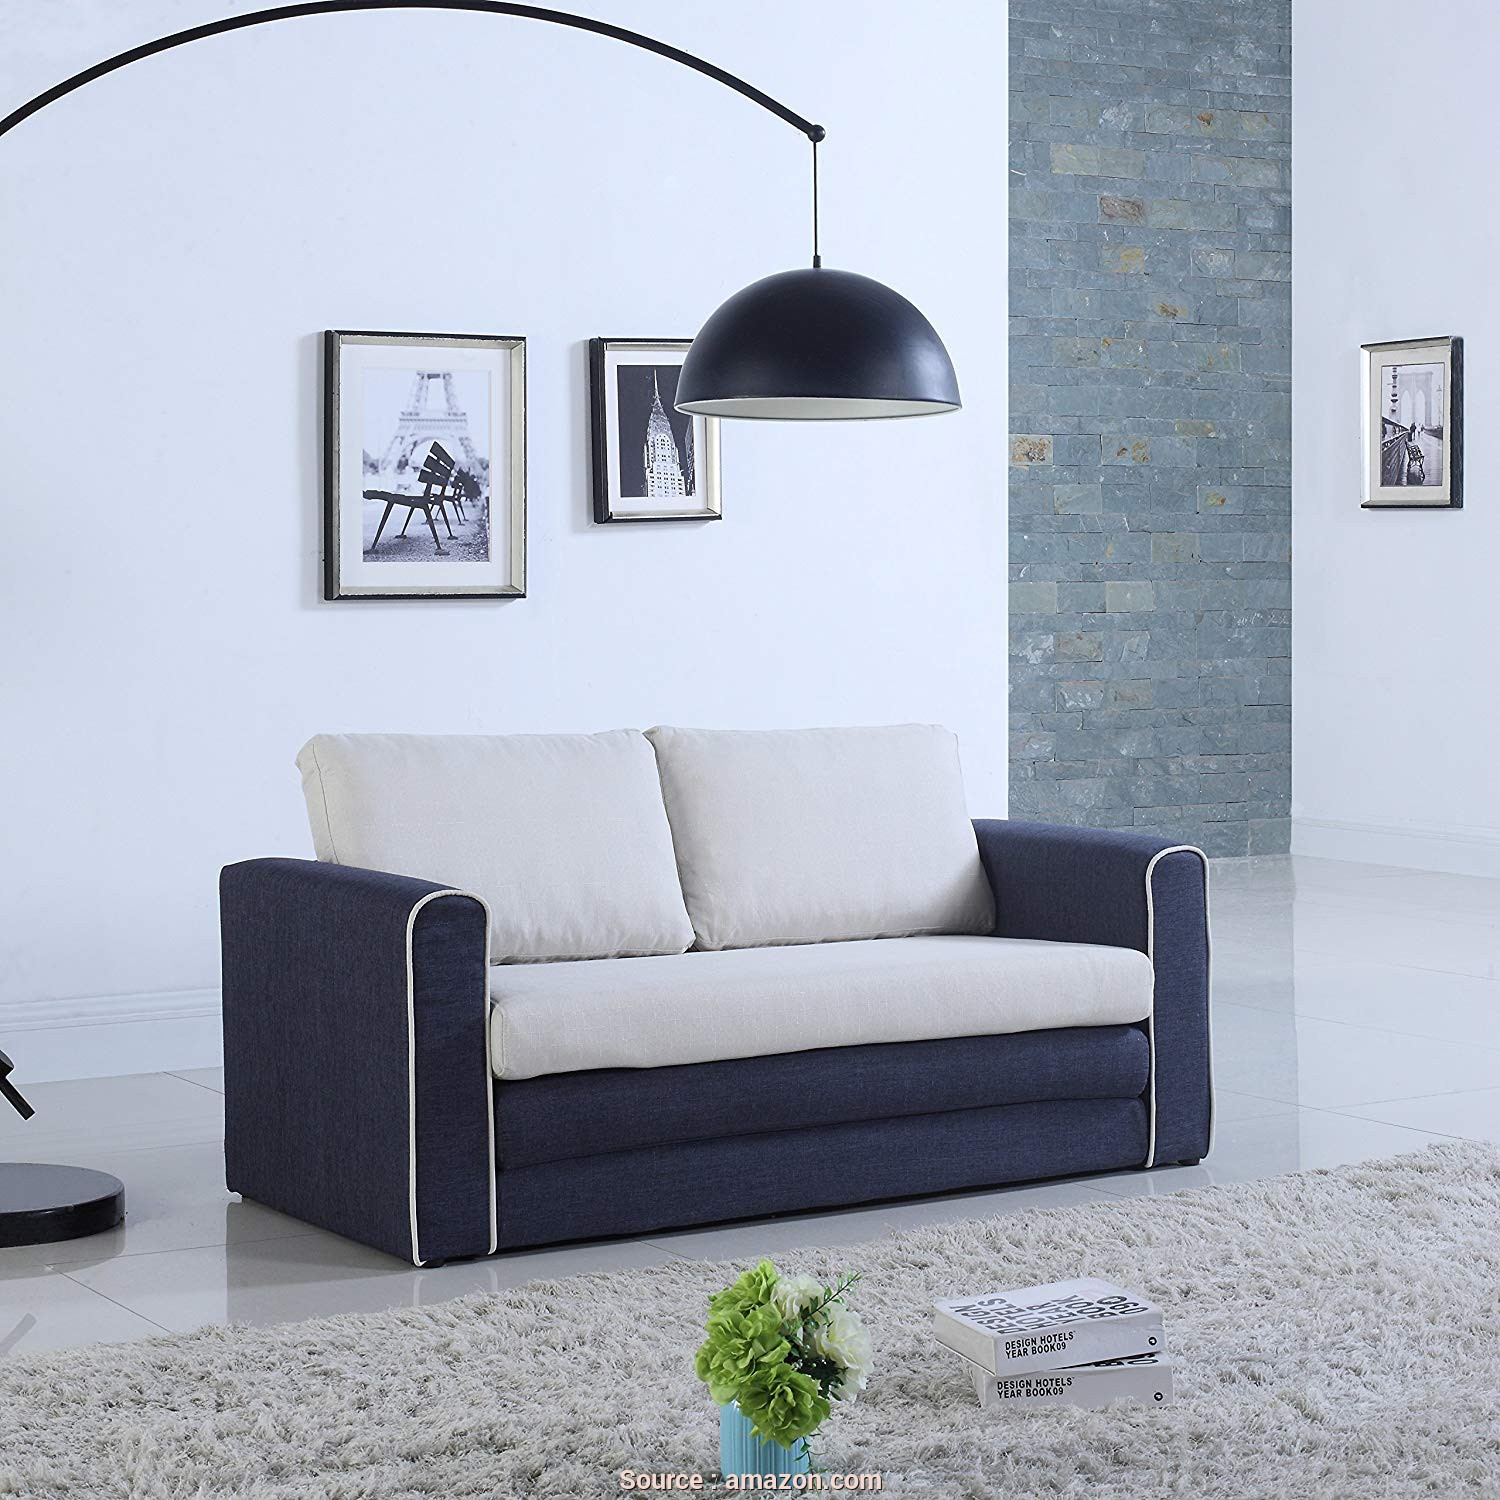 Divano Dm979 Black Modular Office Sofa, Buono Amazon.Com: Divano Roma Furniture Modern 2 Tone Modular/Convertible Sleeper (Dark Blue/Beige): Kitchen & Dining